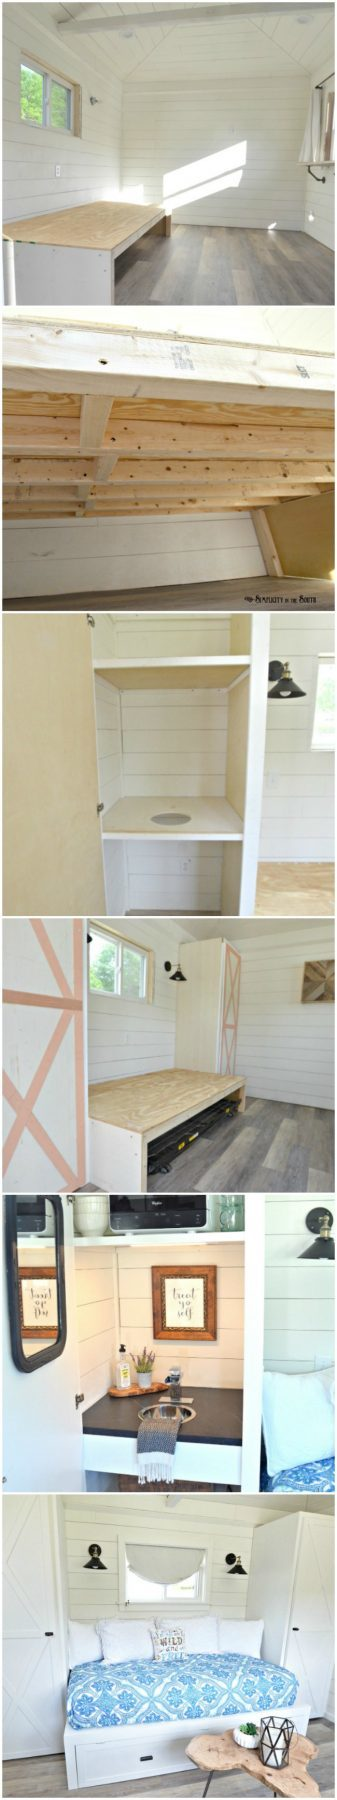 How to make a built-in trundle bed and cabinets for $300. This room gives me ideas for my own cute little tiny house!